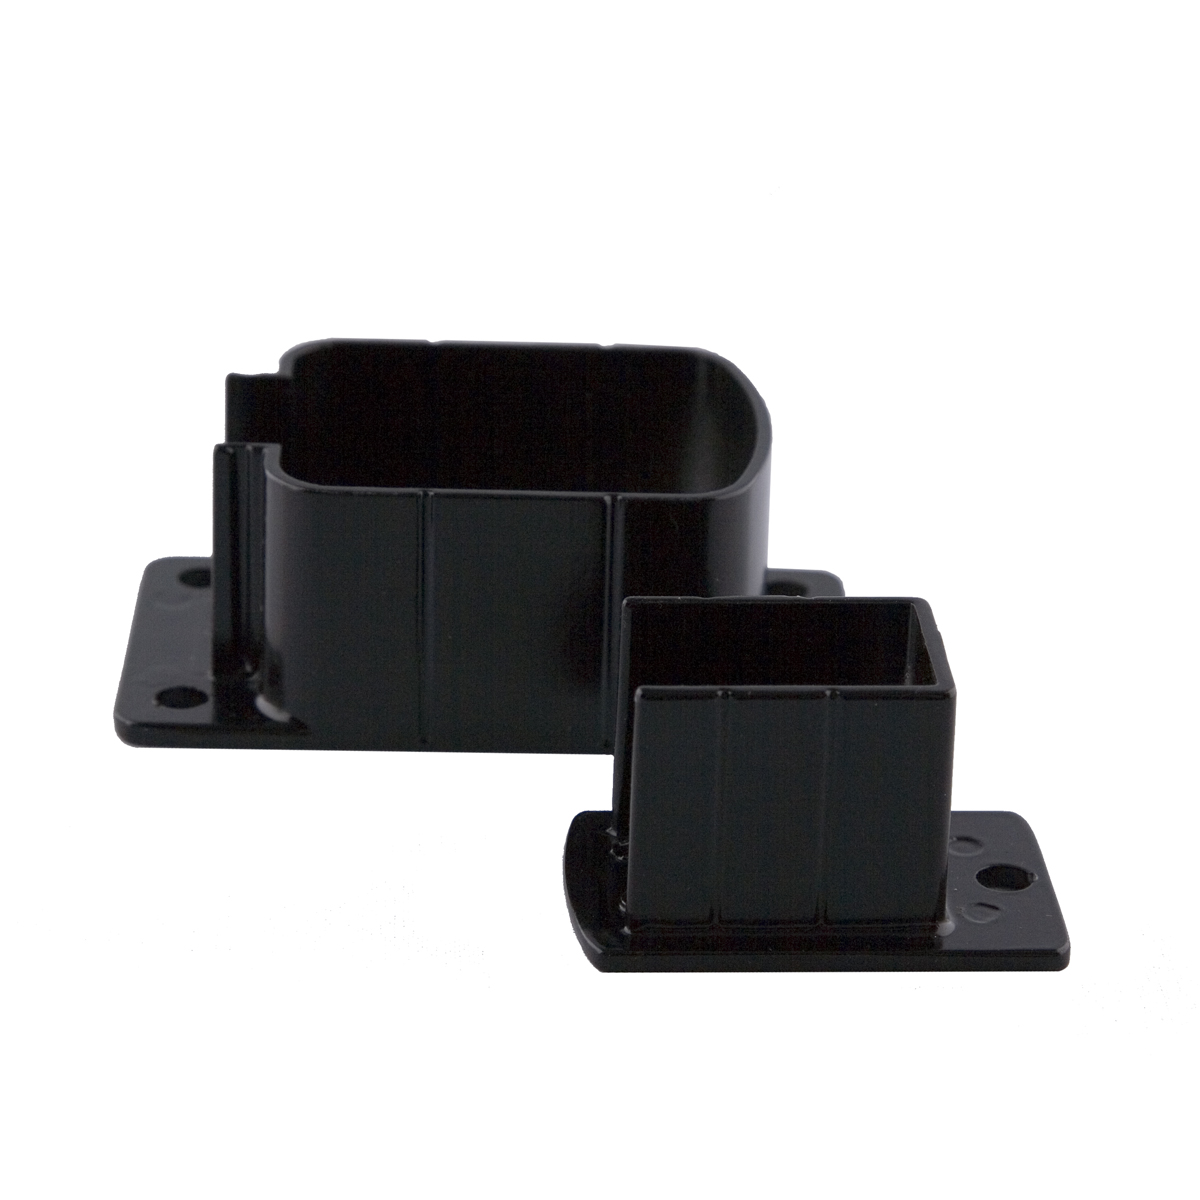 Railing Wall Brackets - Black